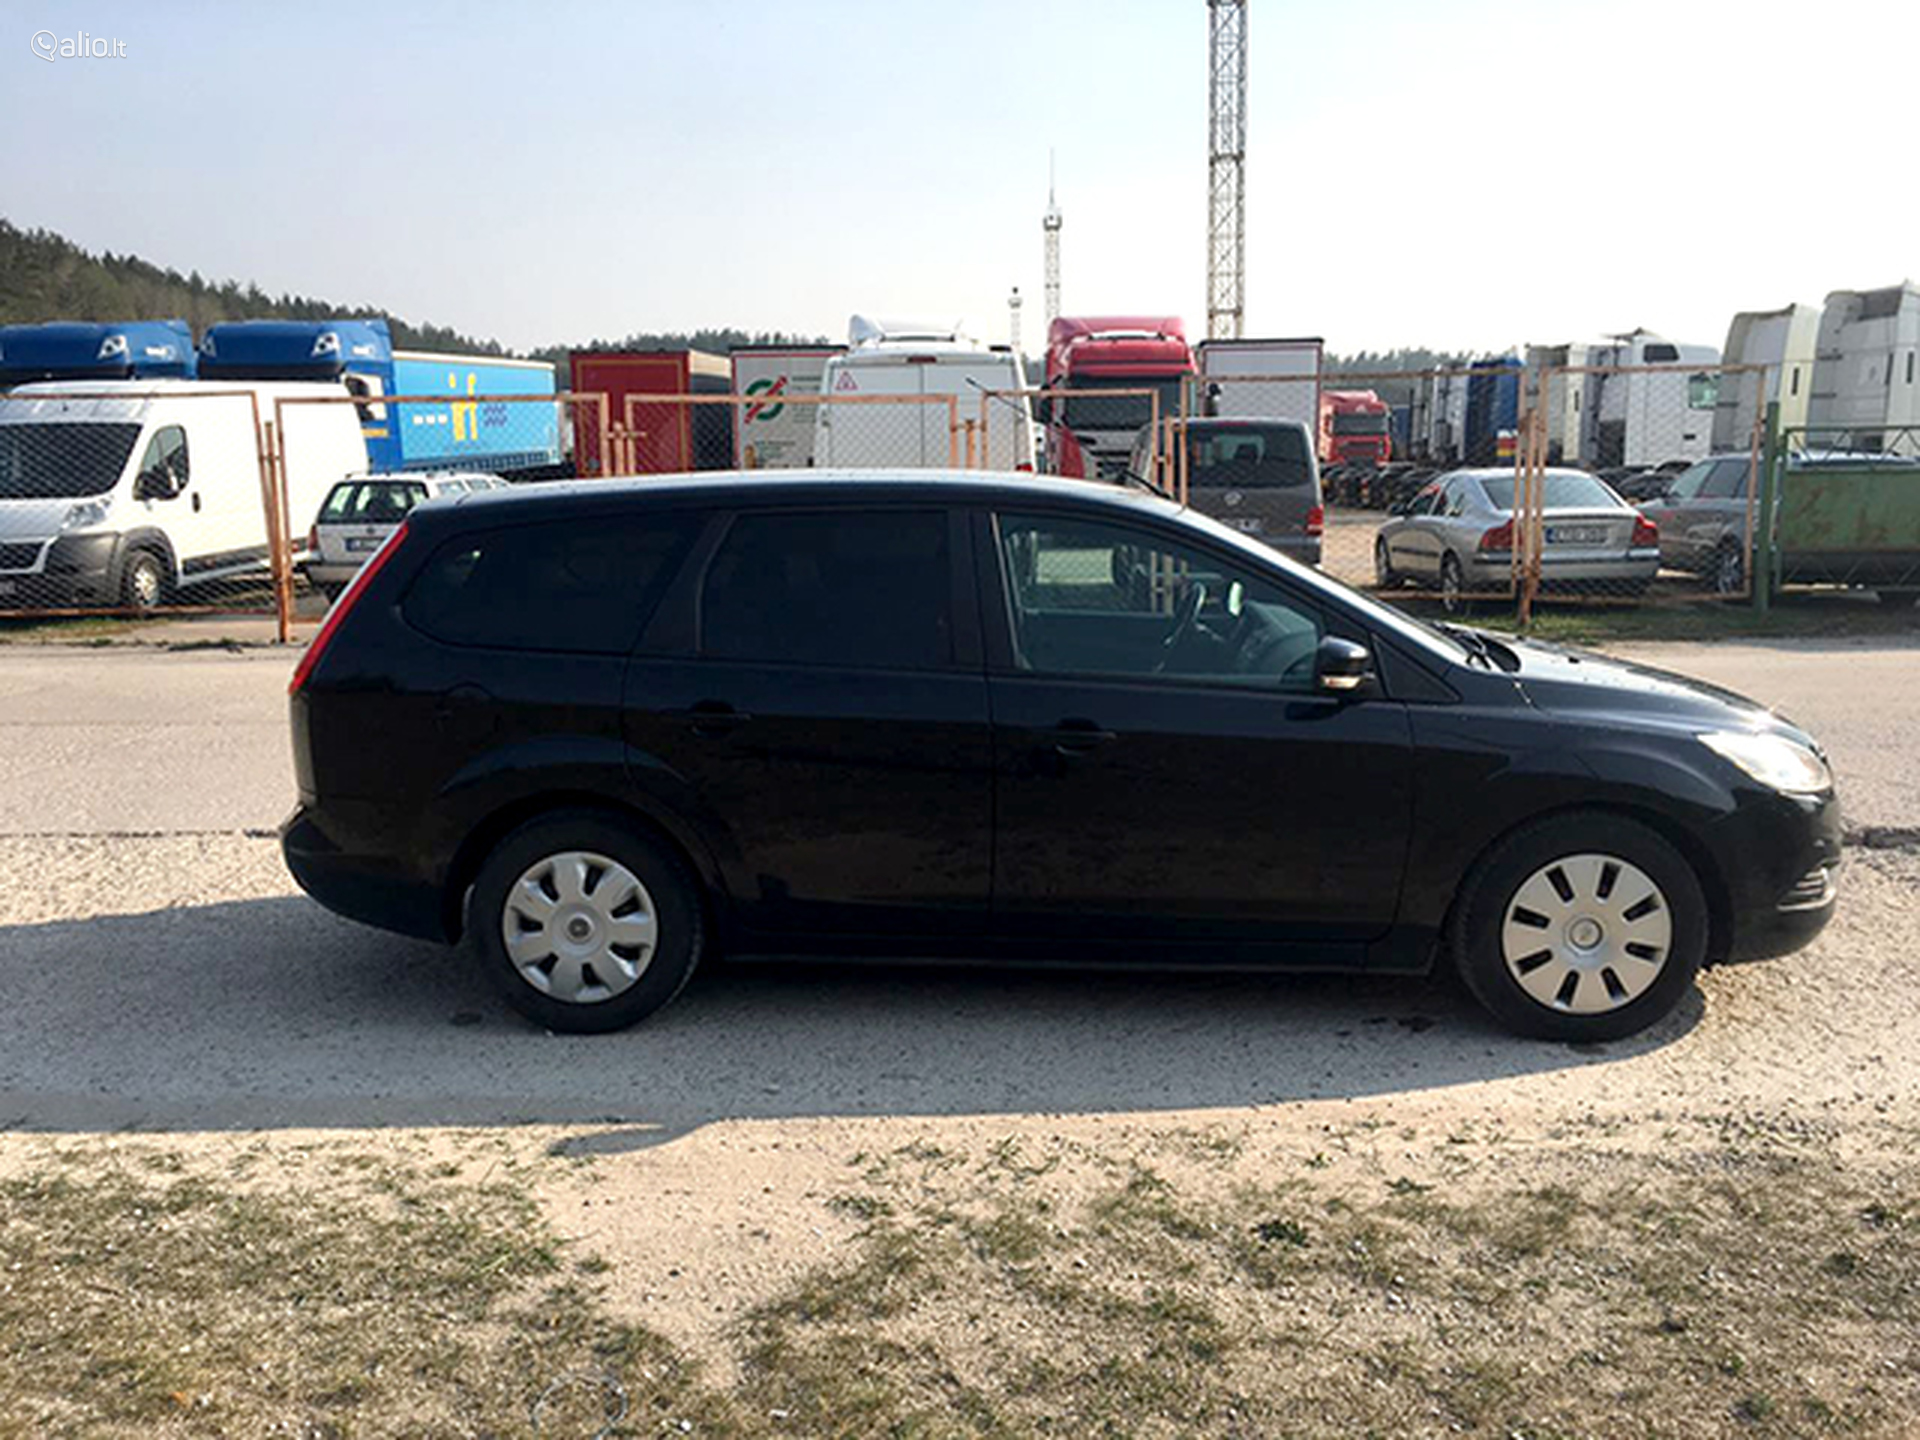 Ford Fous (facelift) 2010  1,6 80 kW